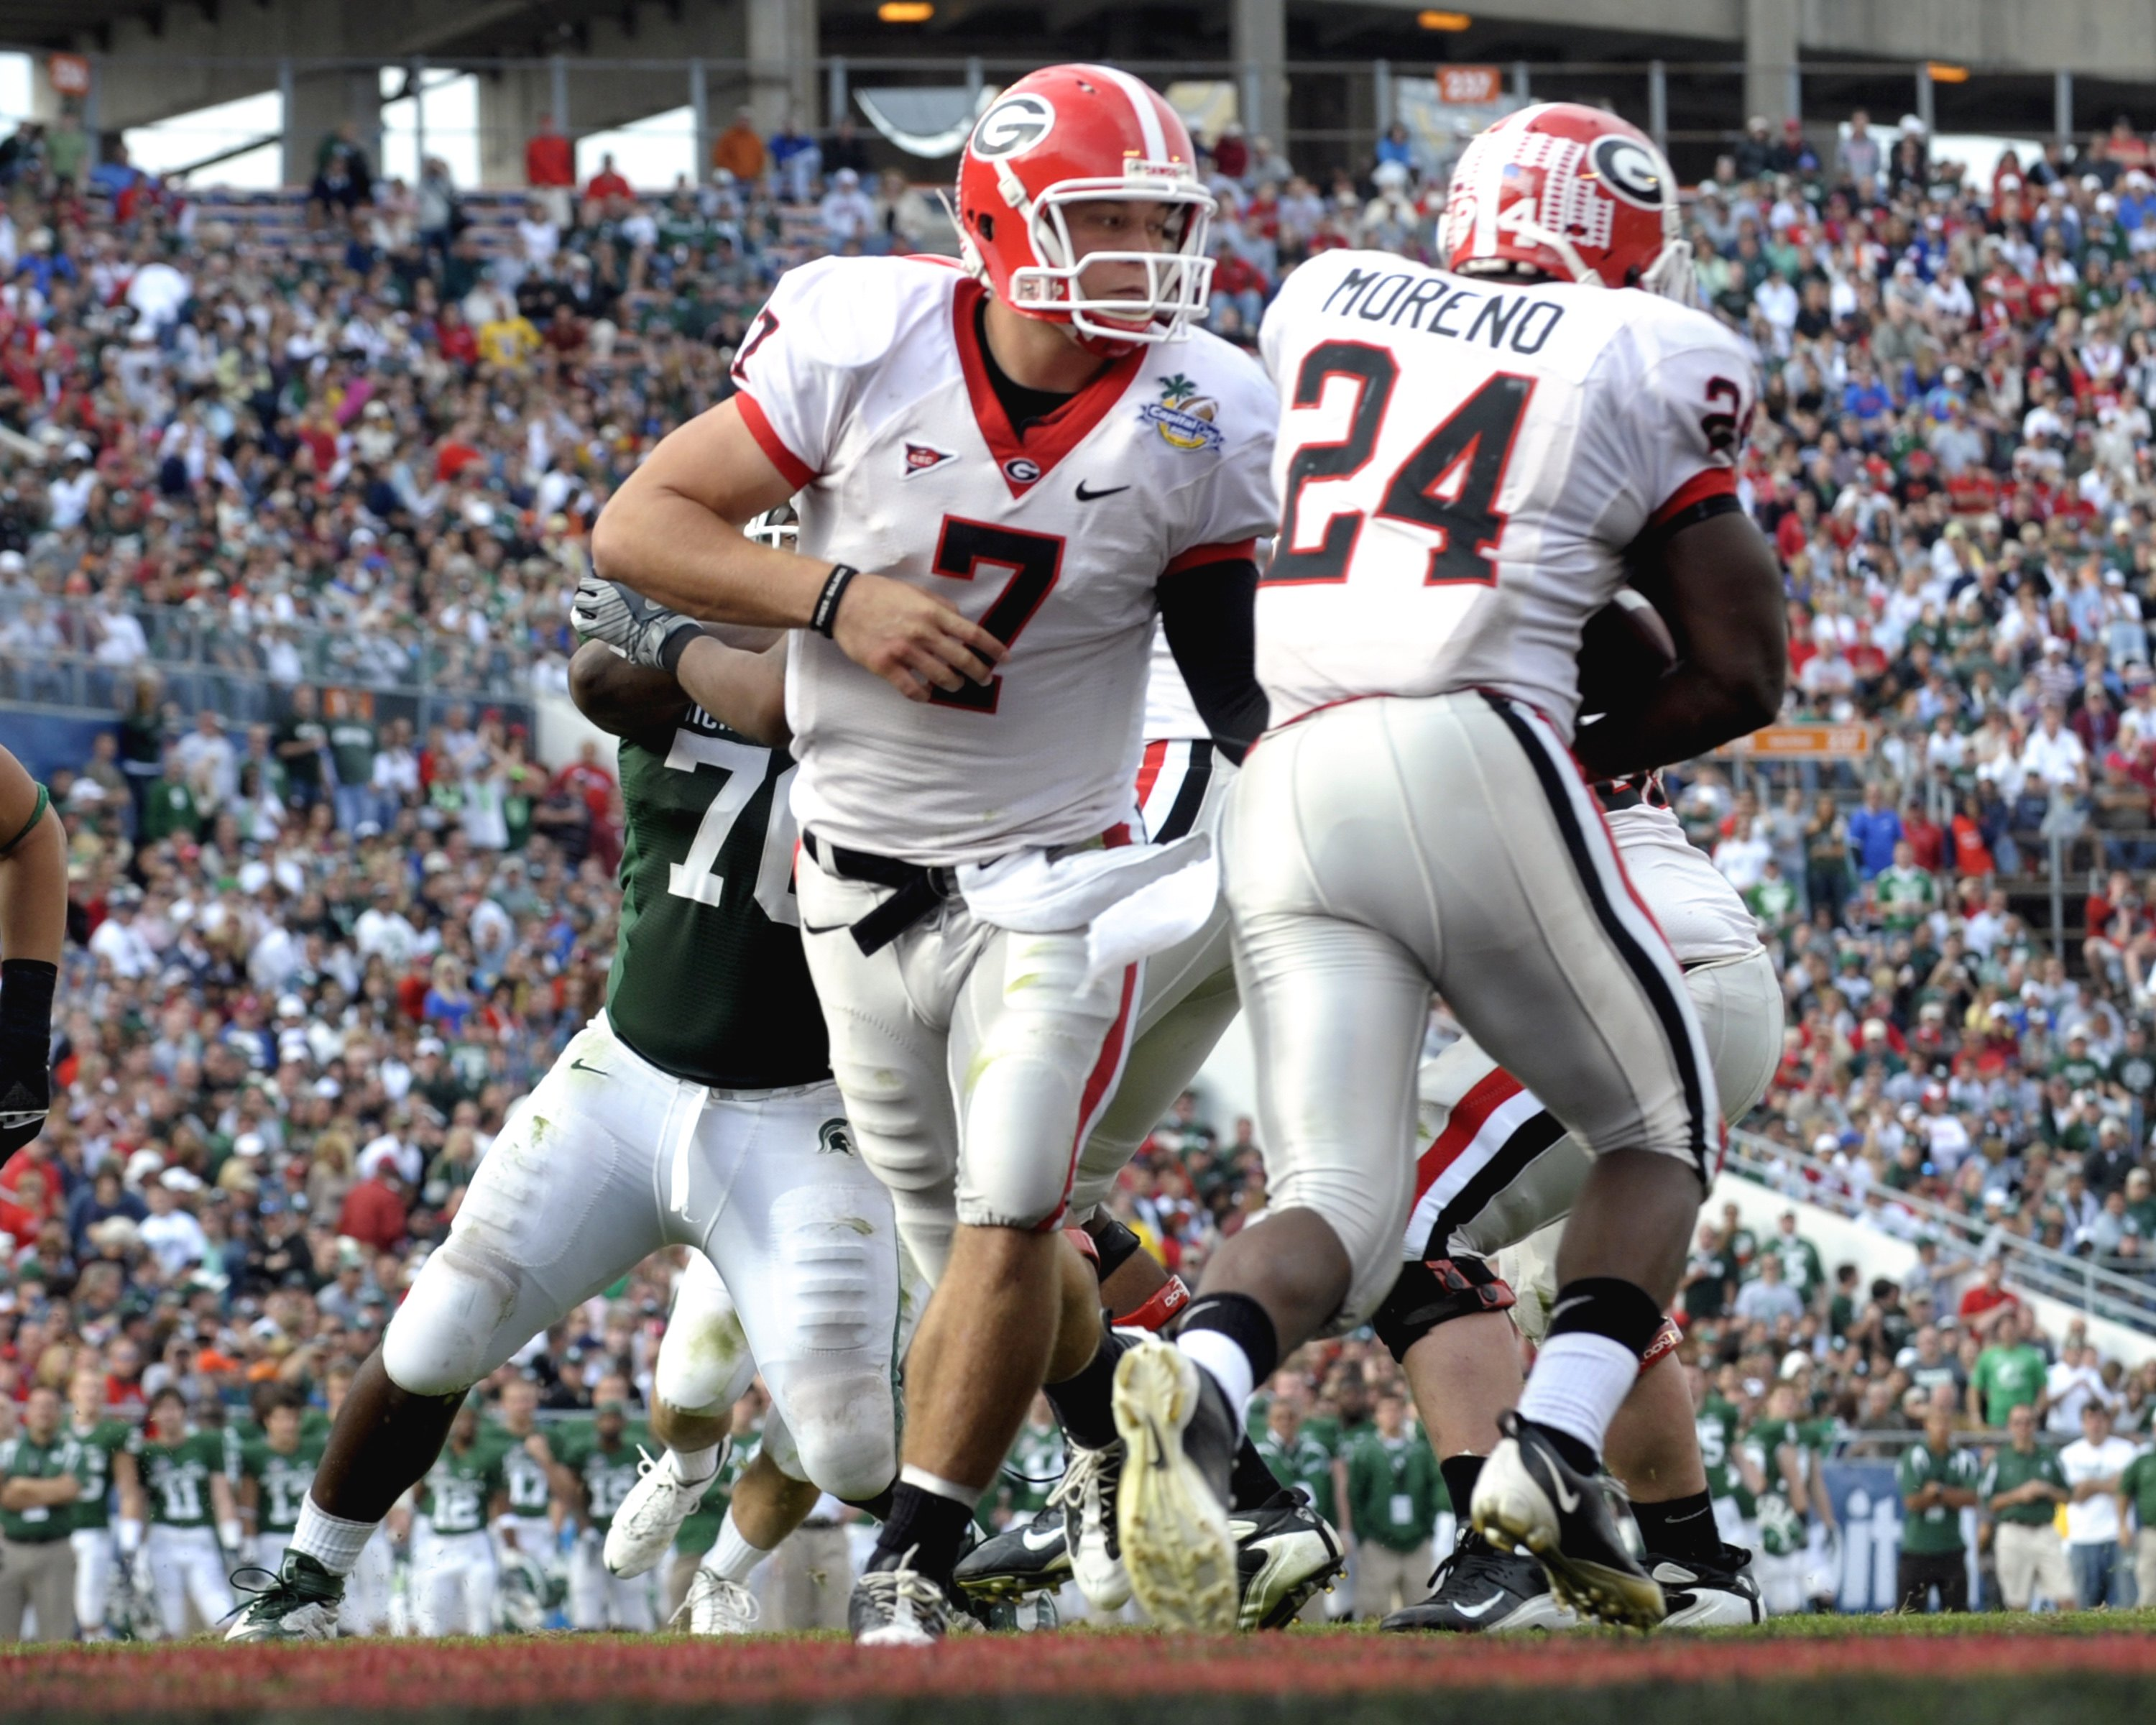 ORLANDO, FL - JANUARY 1: Running back Knowshon Moreno #24 of the University of Georgia takes a handoff from quarterback Matthew Stafford #7 against the Michigan State Spartans at the 2009 Capital One Bowl at the Citrus Bowl on January 1, 2009 in Orlando,